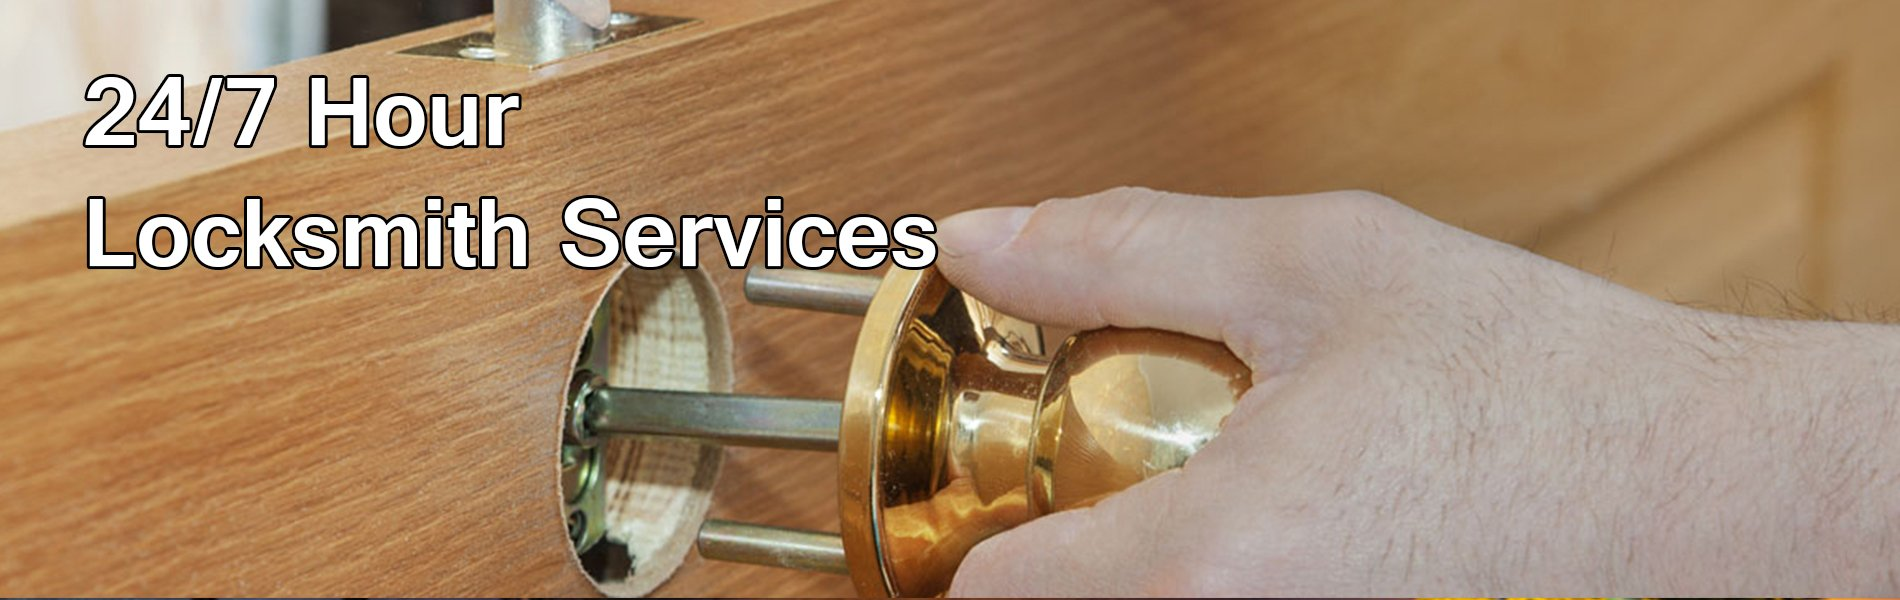 Los Altos Locksmiths, Los Altos, CA 650-425-6059